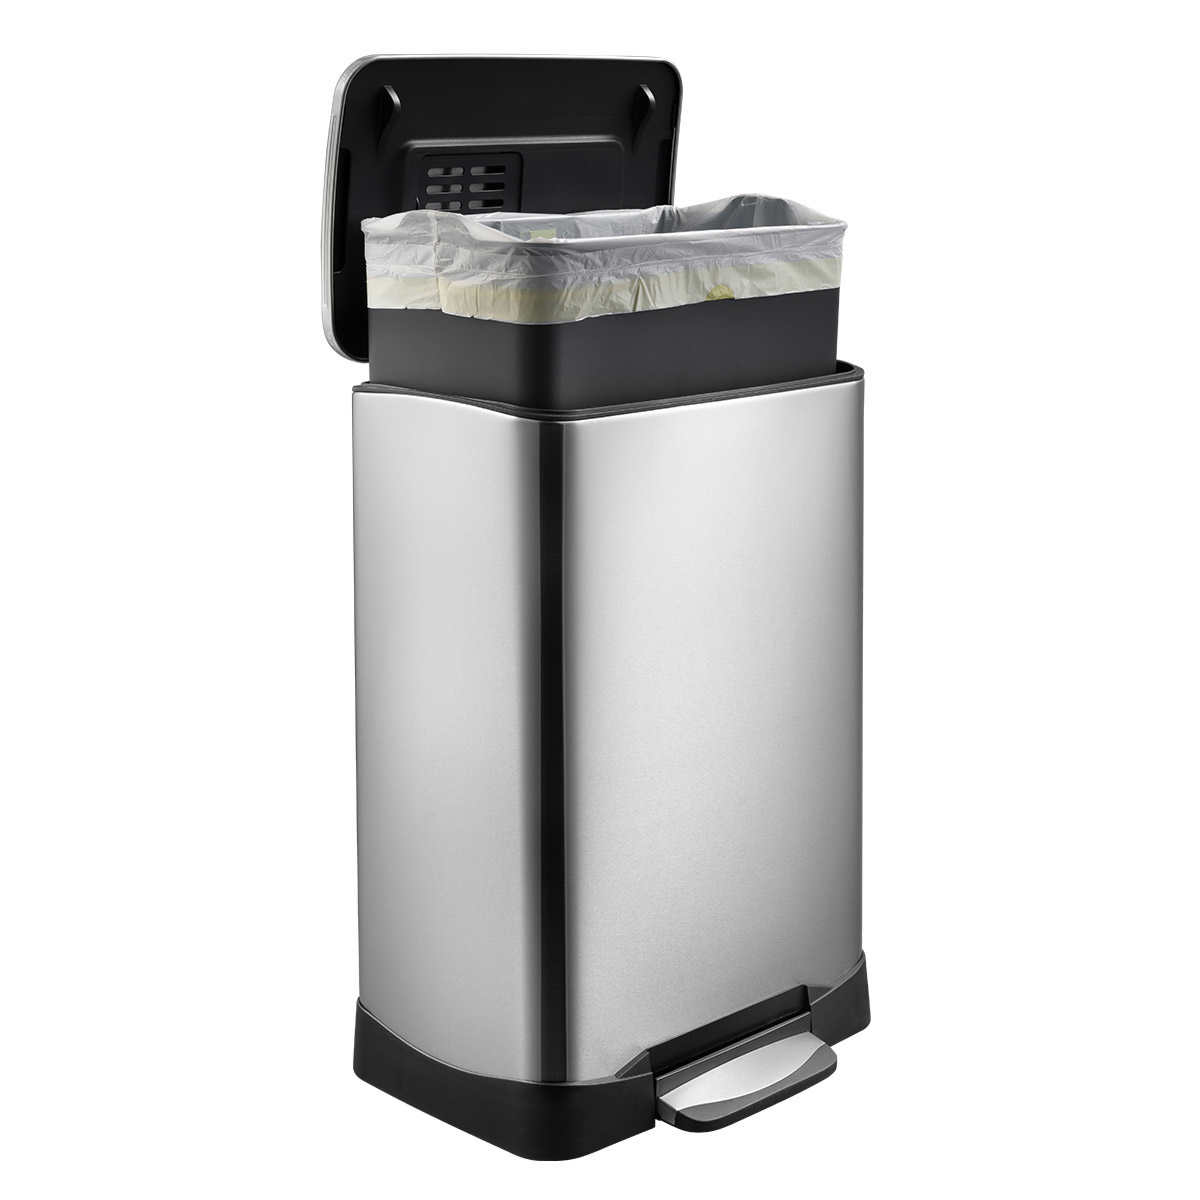 Neocube 50l Stainless Steel Trash Can